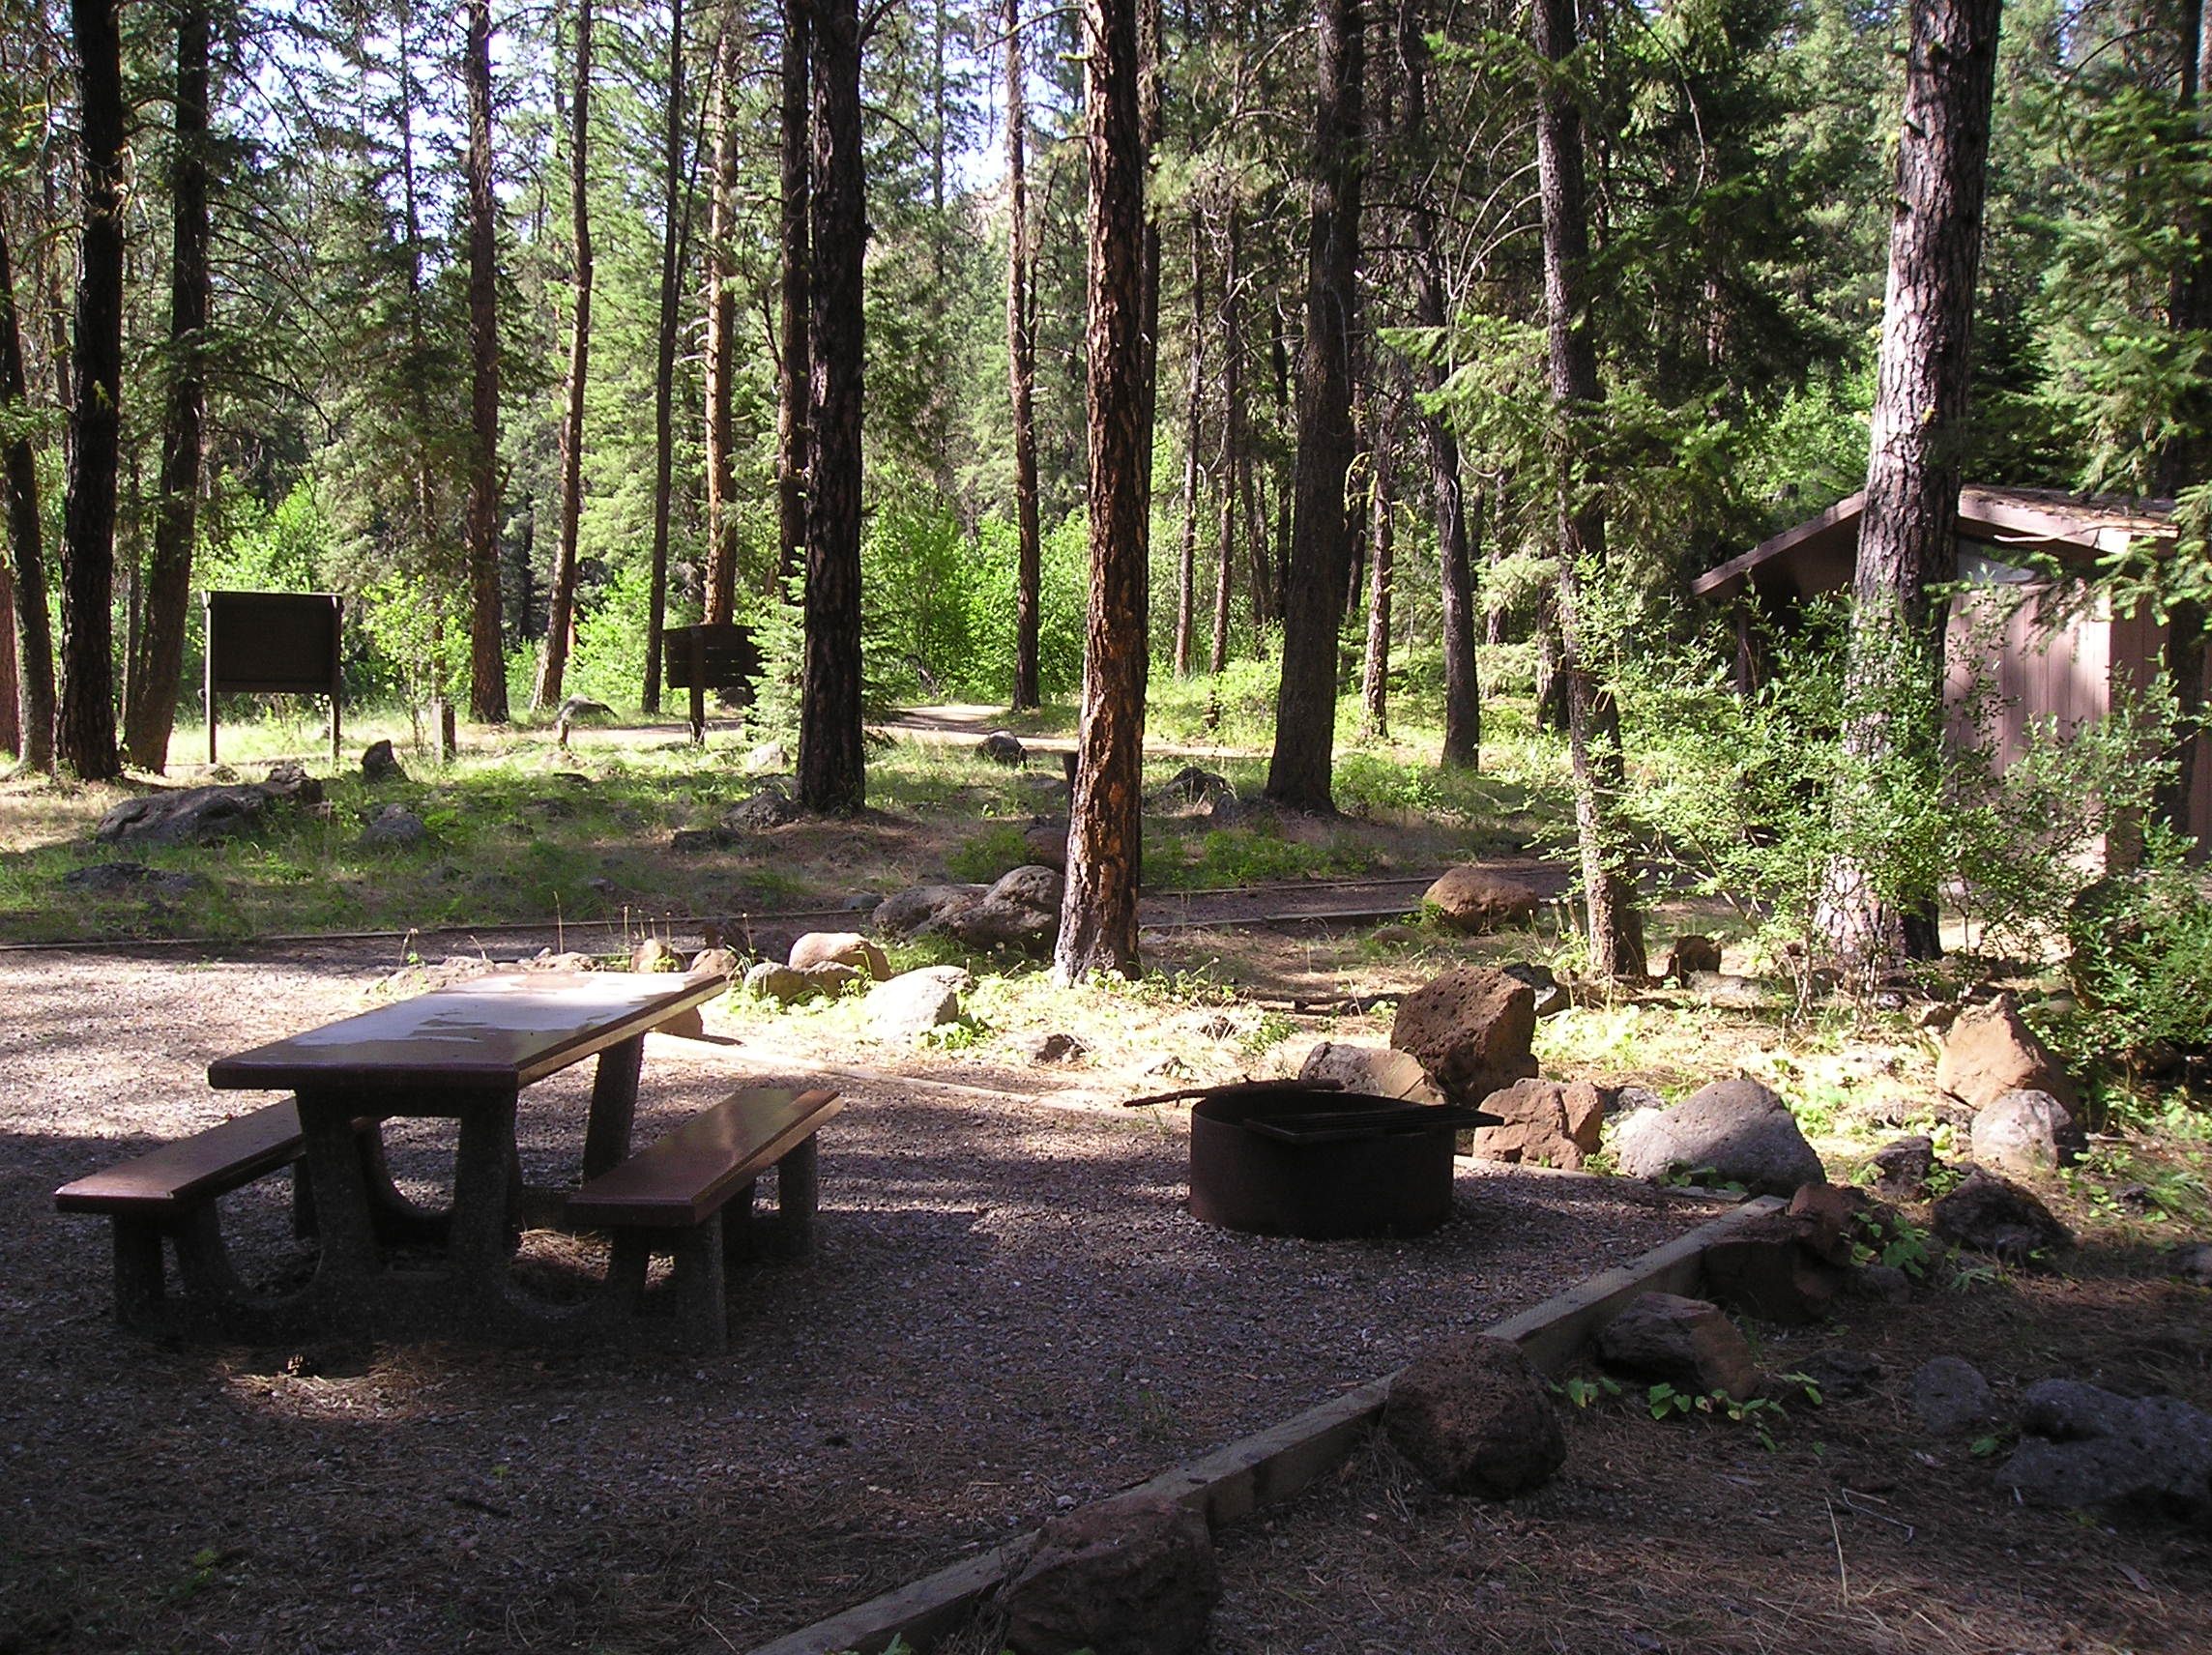 Picnic table and campiste in pine tree forest in Eagle Forks Campground